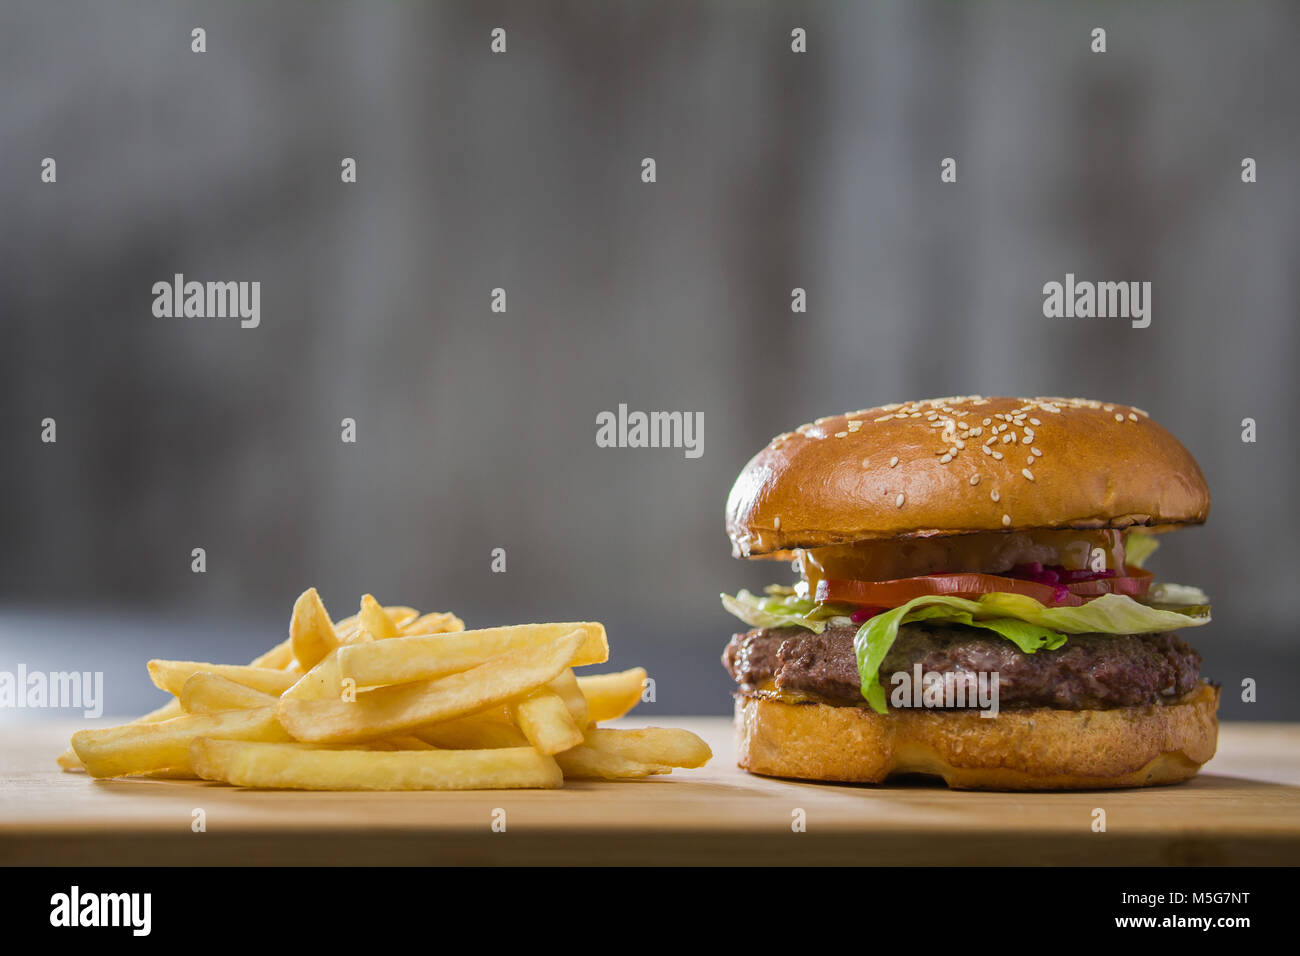 A fresh tasty burger with potatoes on the table - Stock Image